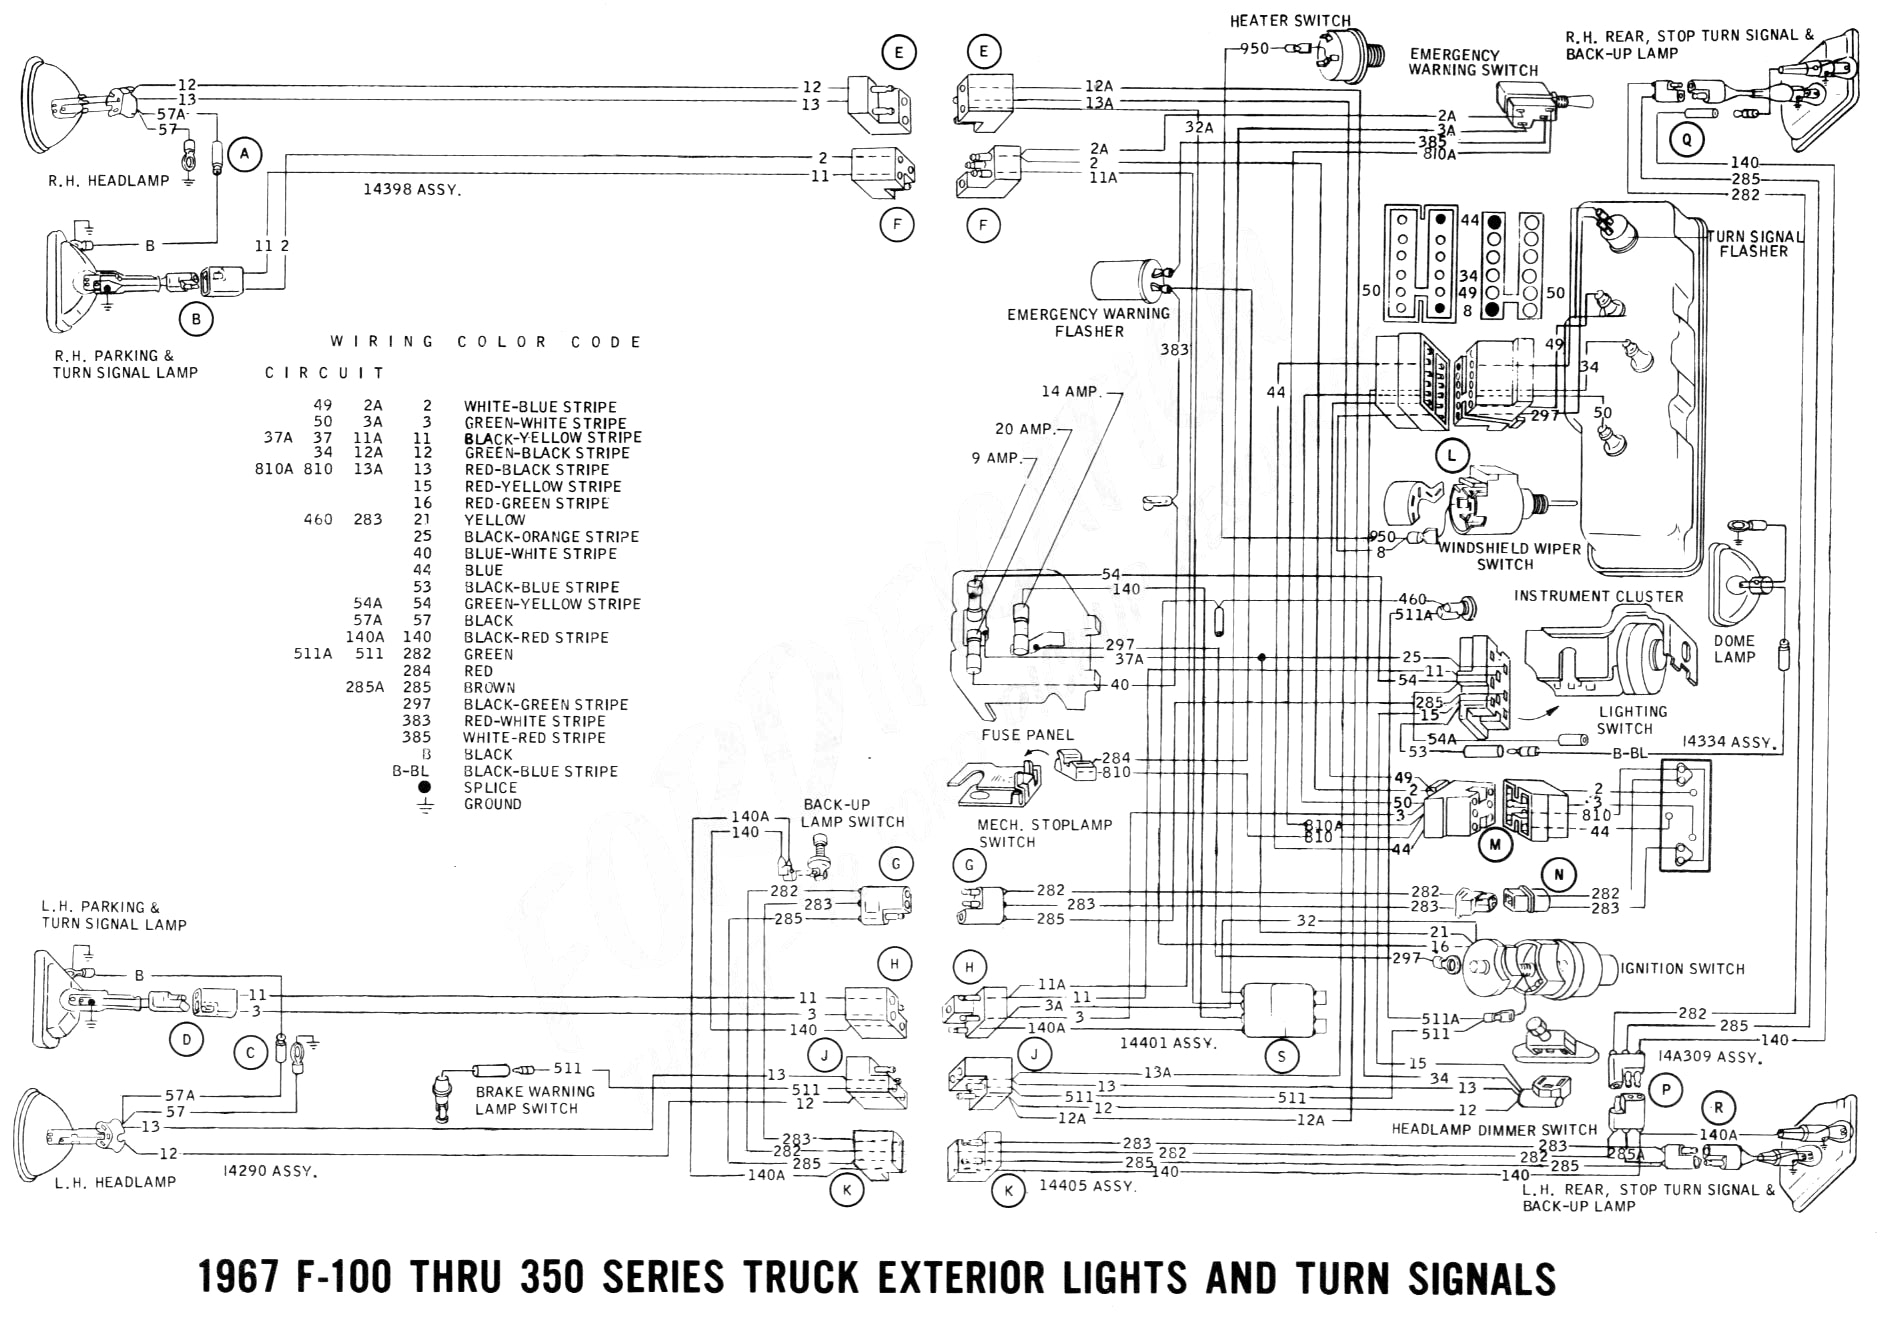 hight resolution of ford f650 wiring diagram ford f650 wiring diagram ford f350 1986 ignition wiring diagram 1986